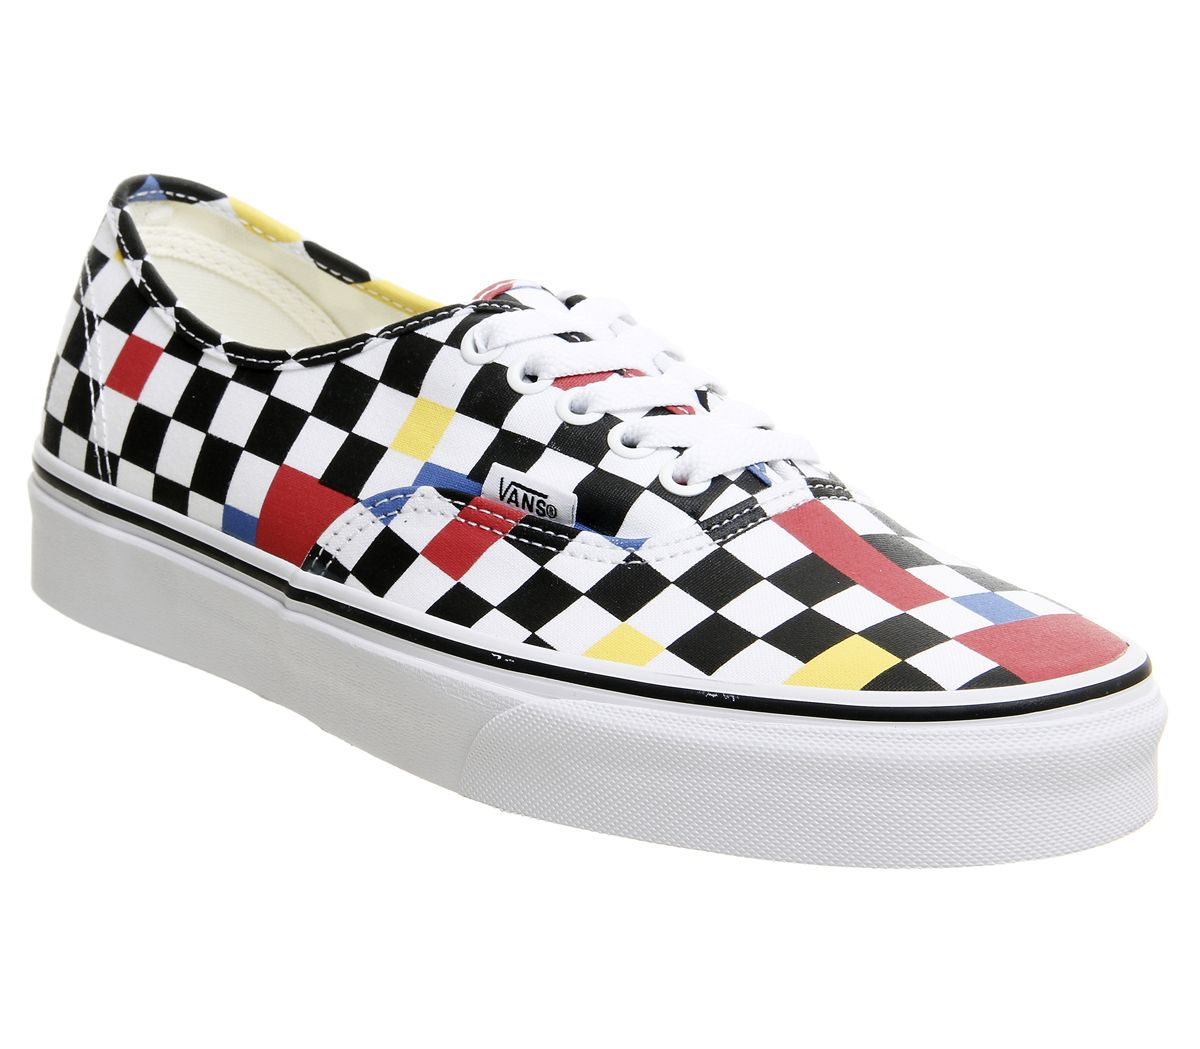 88f619da901ca6 Vans Authentic Trainers Geometric Multi Black True White Exclusive ...